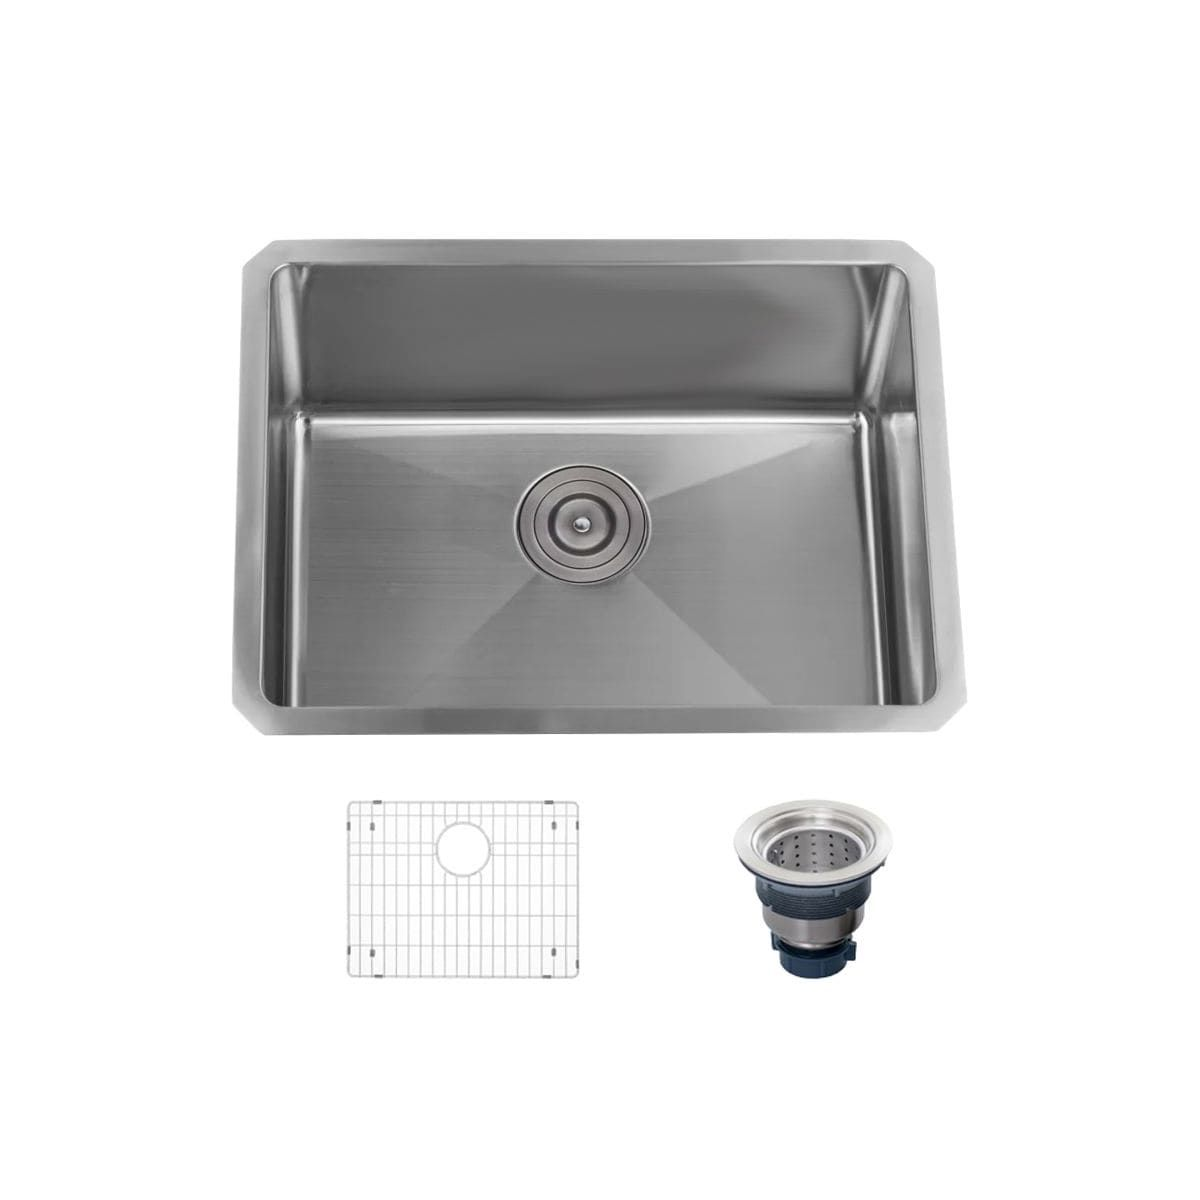 Miseno Mls2318sr With Images Stainless Steel Kitchen Sink